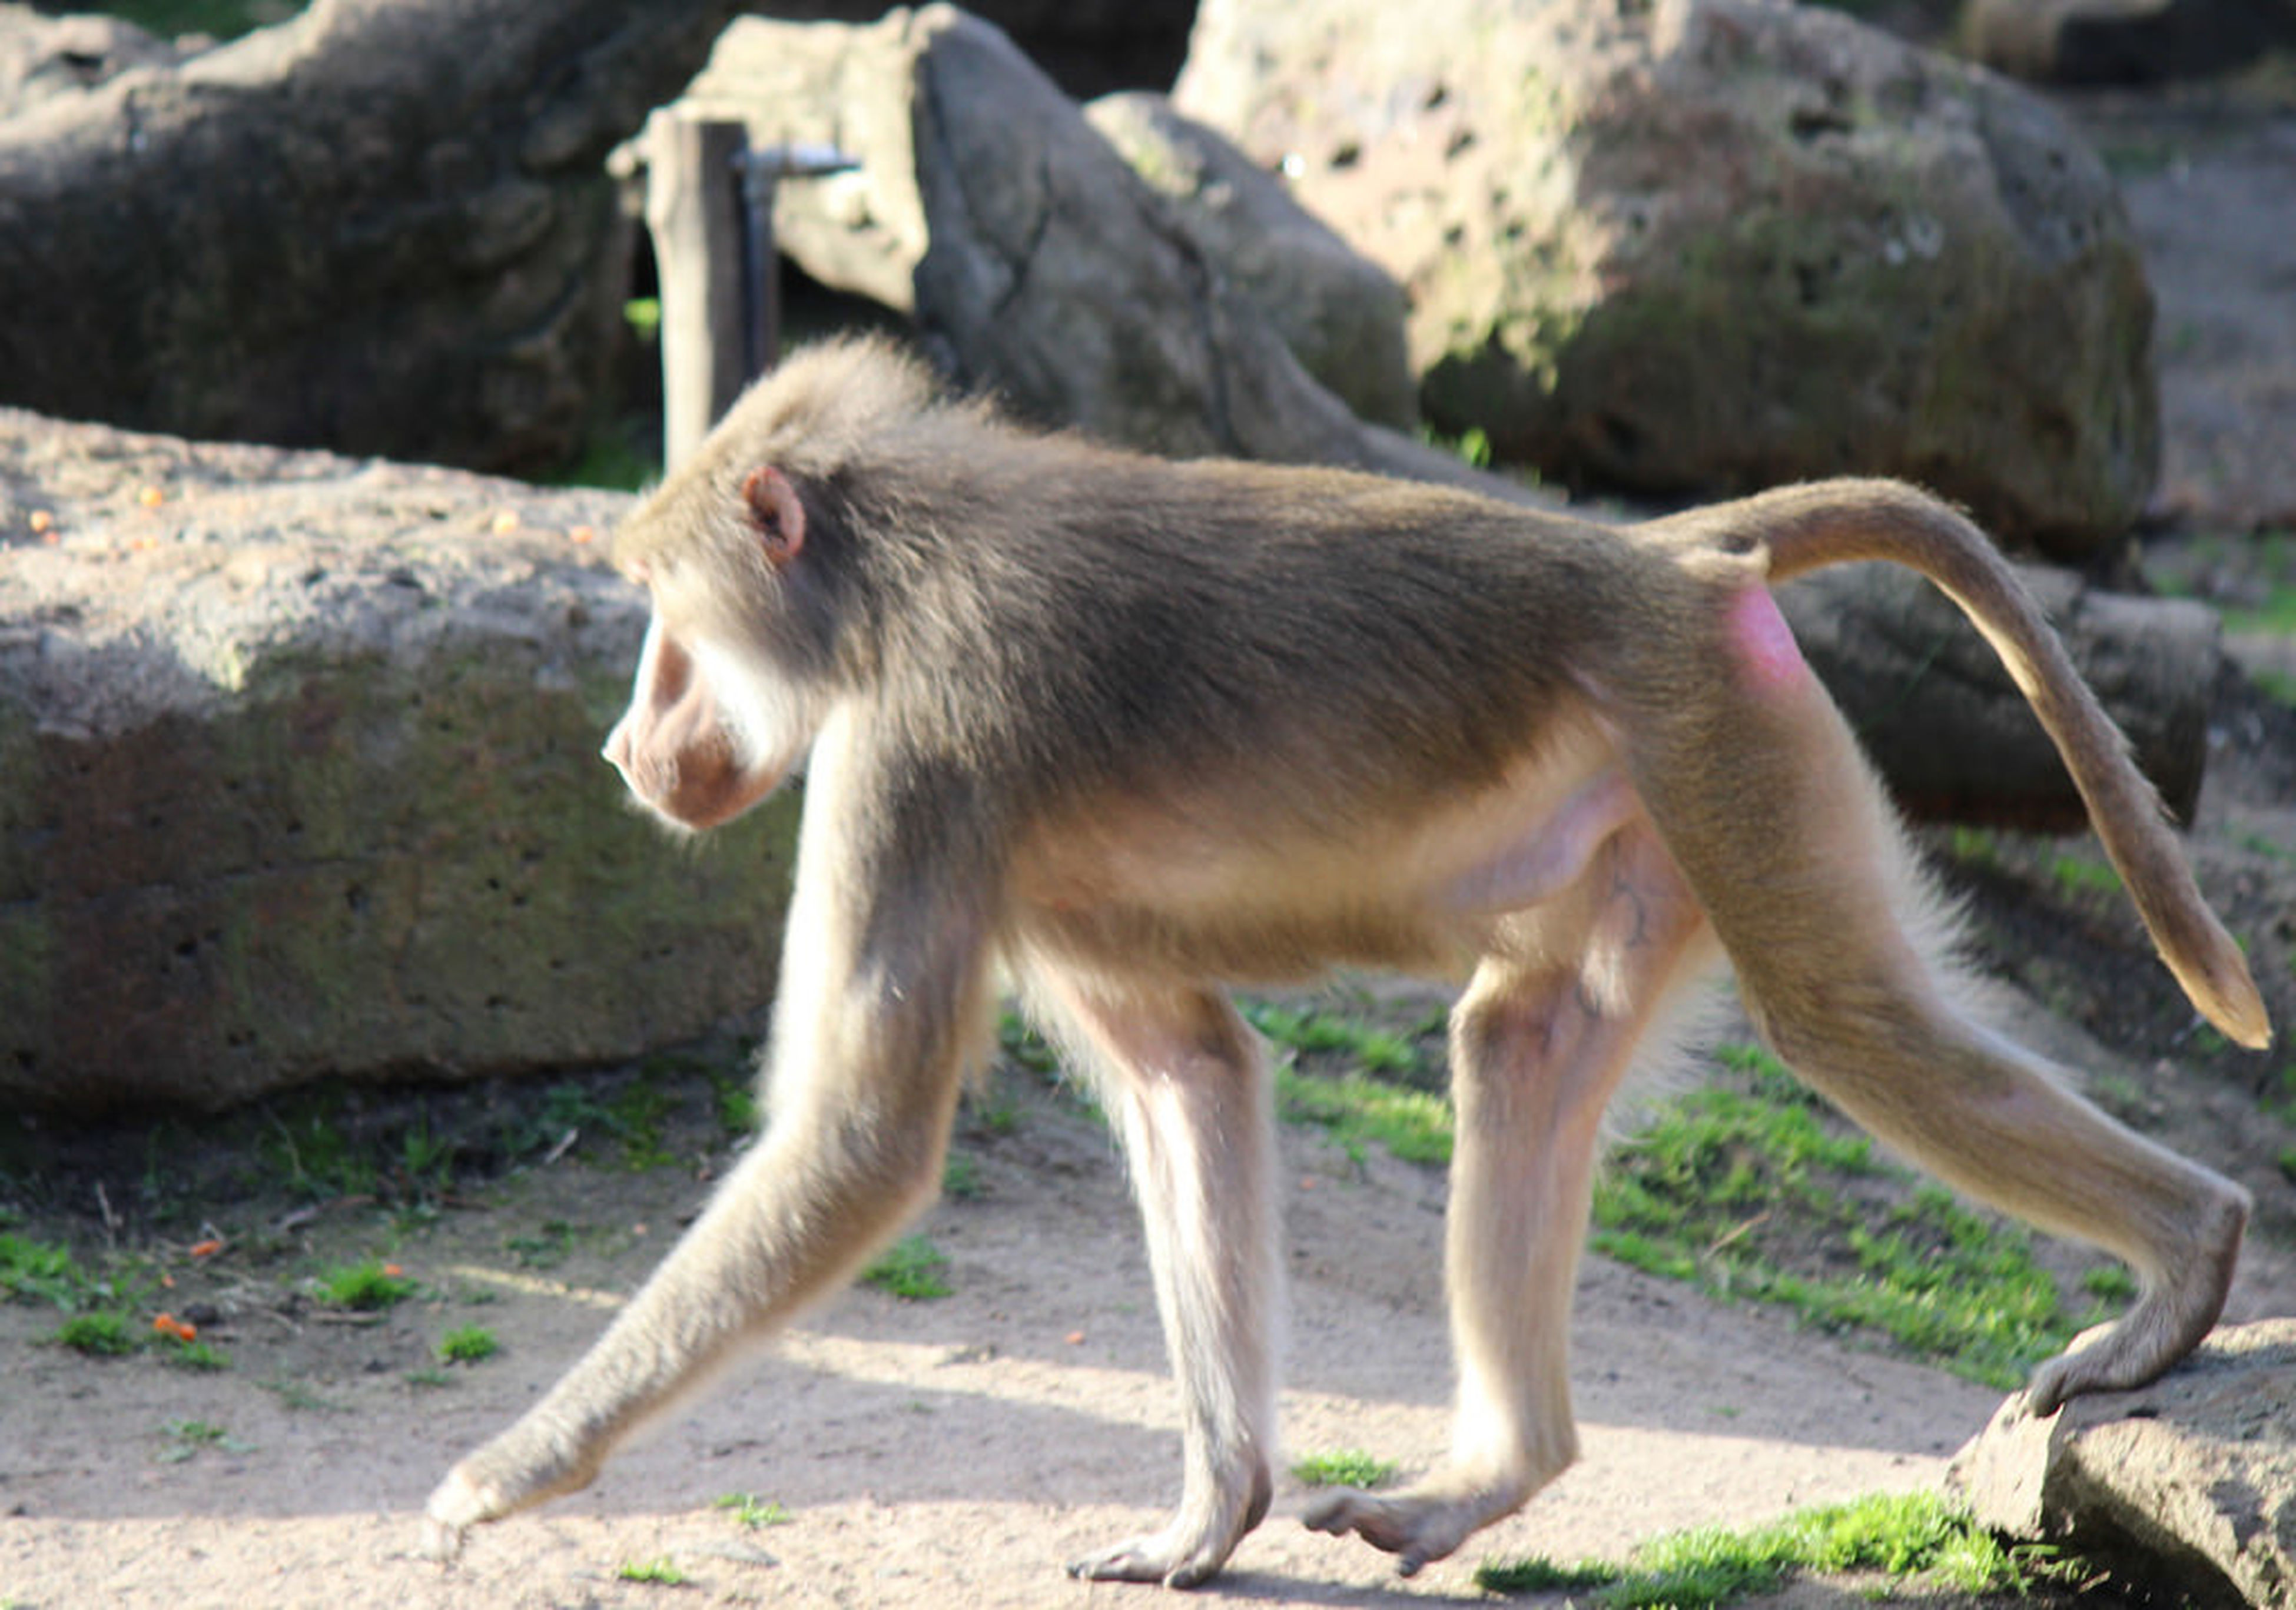 animal themes, one animal, animals in the wild, mammal, wildlife, full length, focus on foreground, monkey, side view, standing, zoo, outdoors, nature, day, two animals, rock - object, close-up, no people, looking away, vertebrate